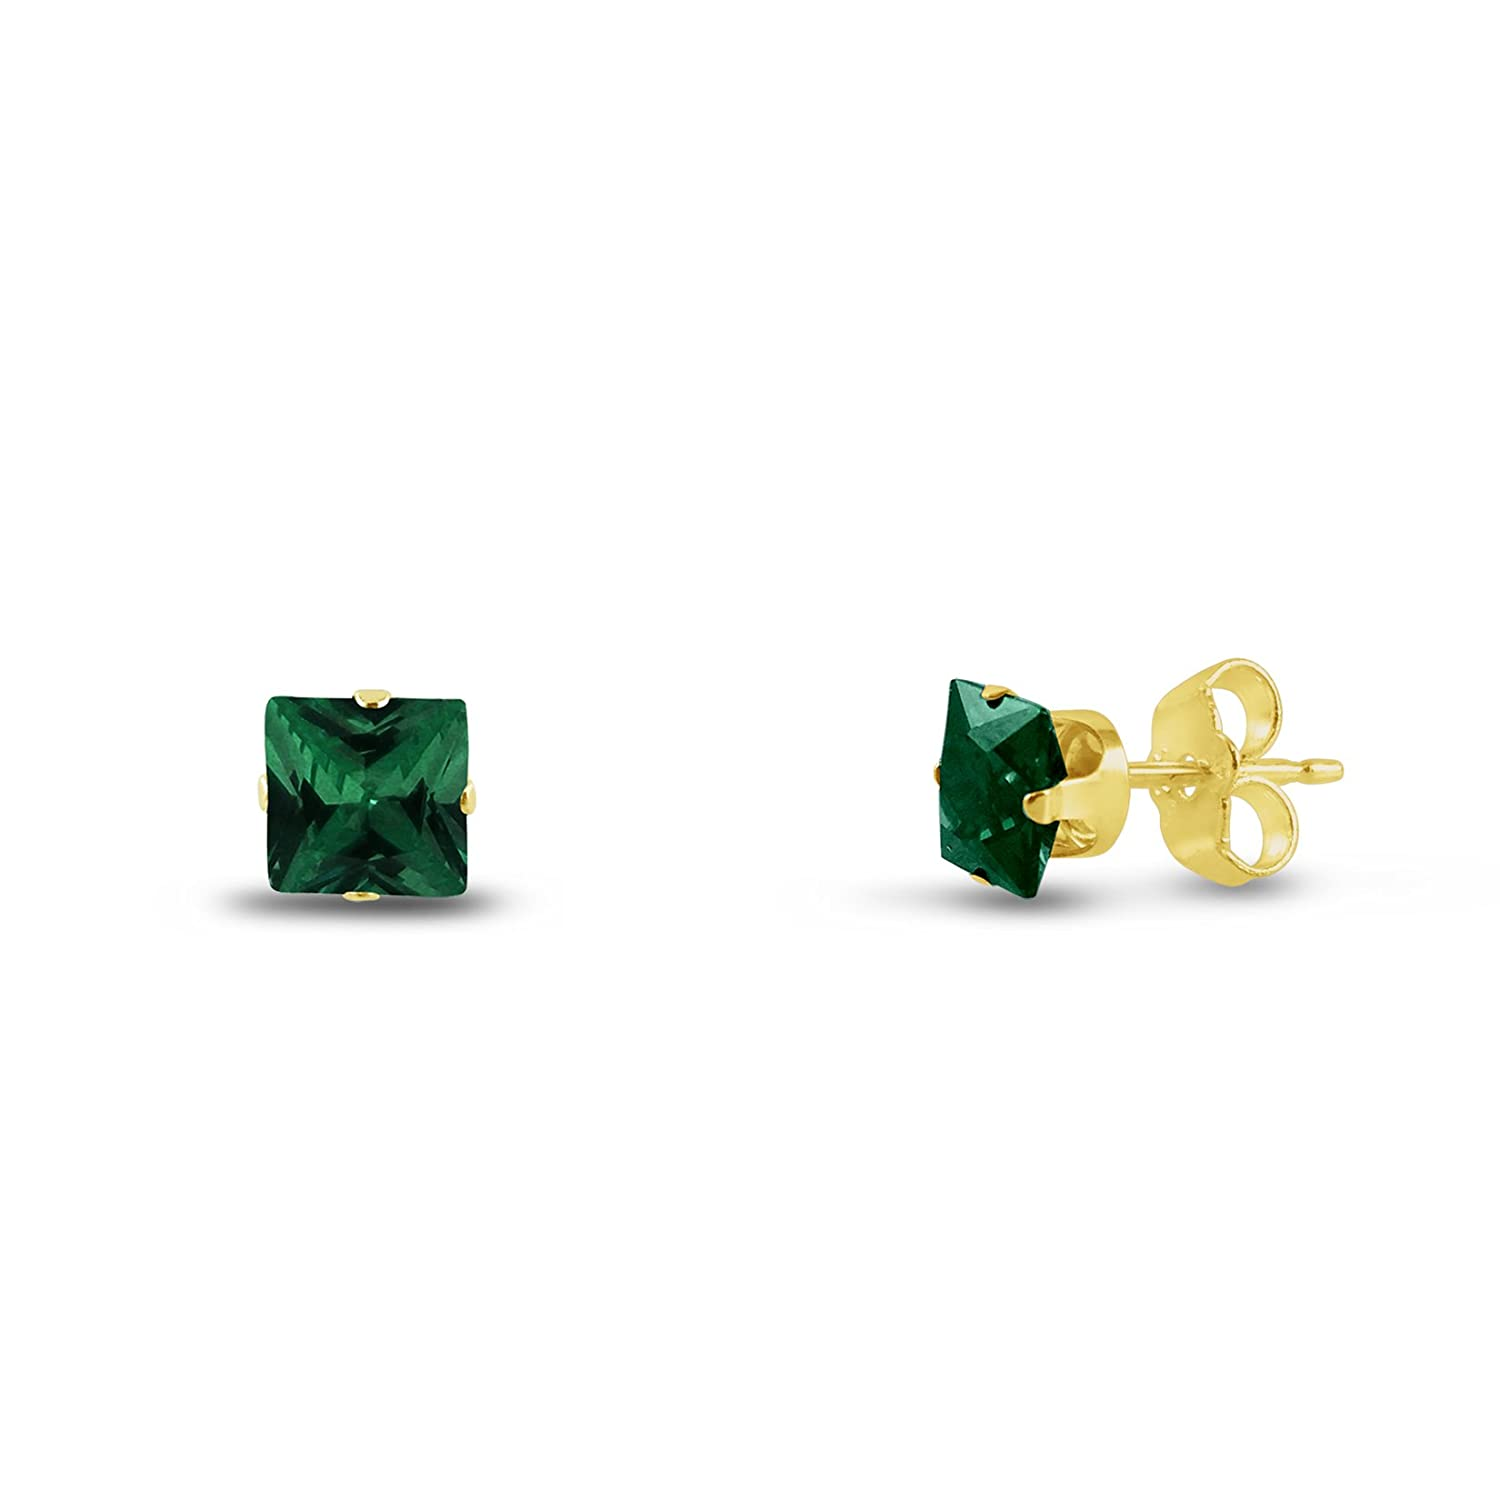 Square 2x2mm Simulated Emerald Green Gold Plated Sterling Silver Stud Earrings